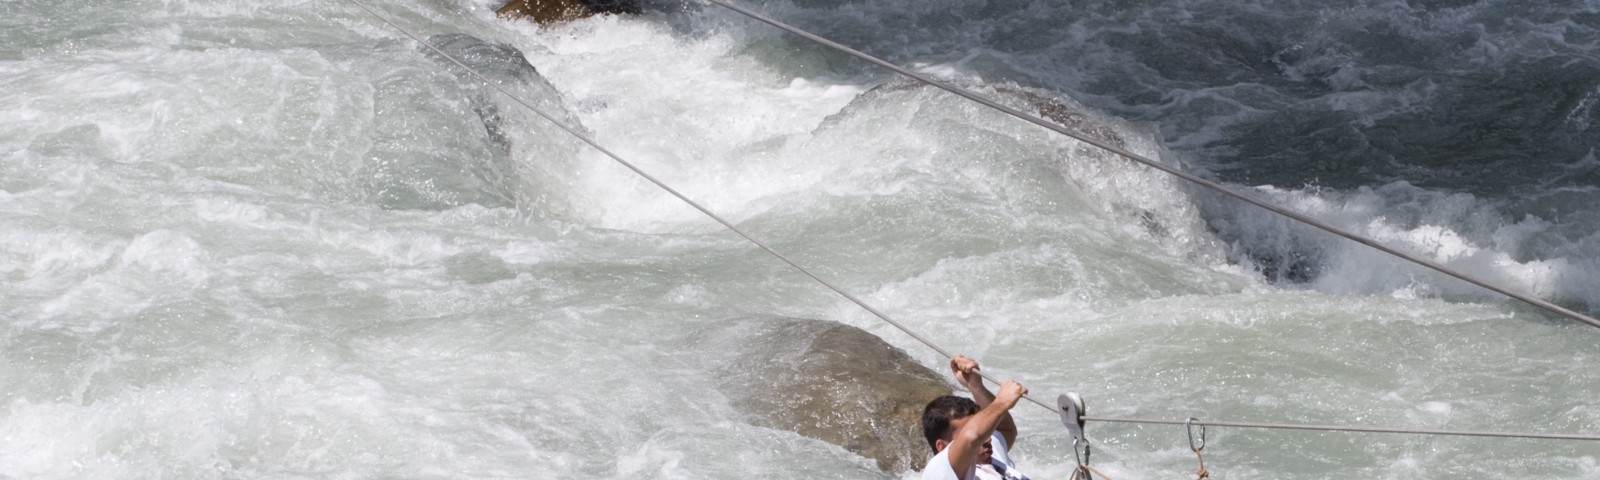 Man crossing a river pulling himself over a rope